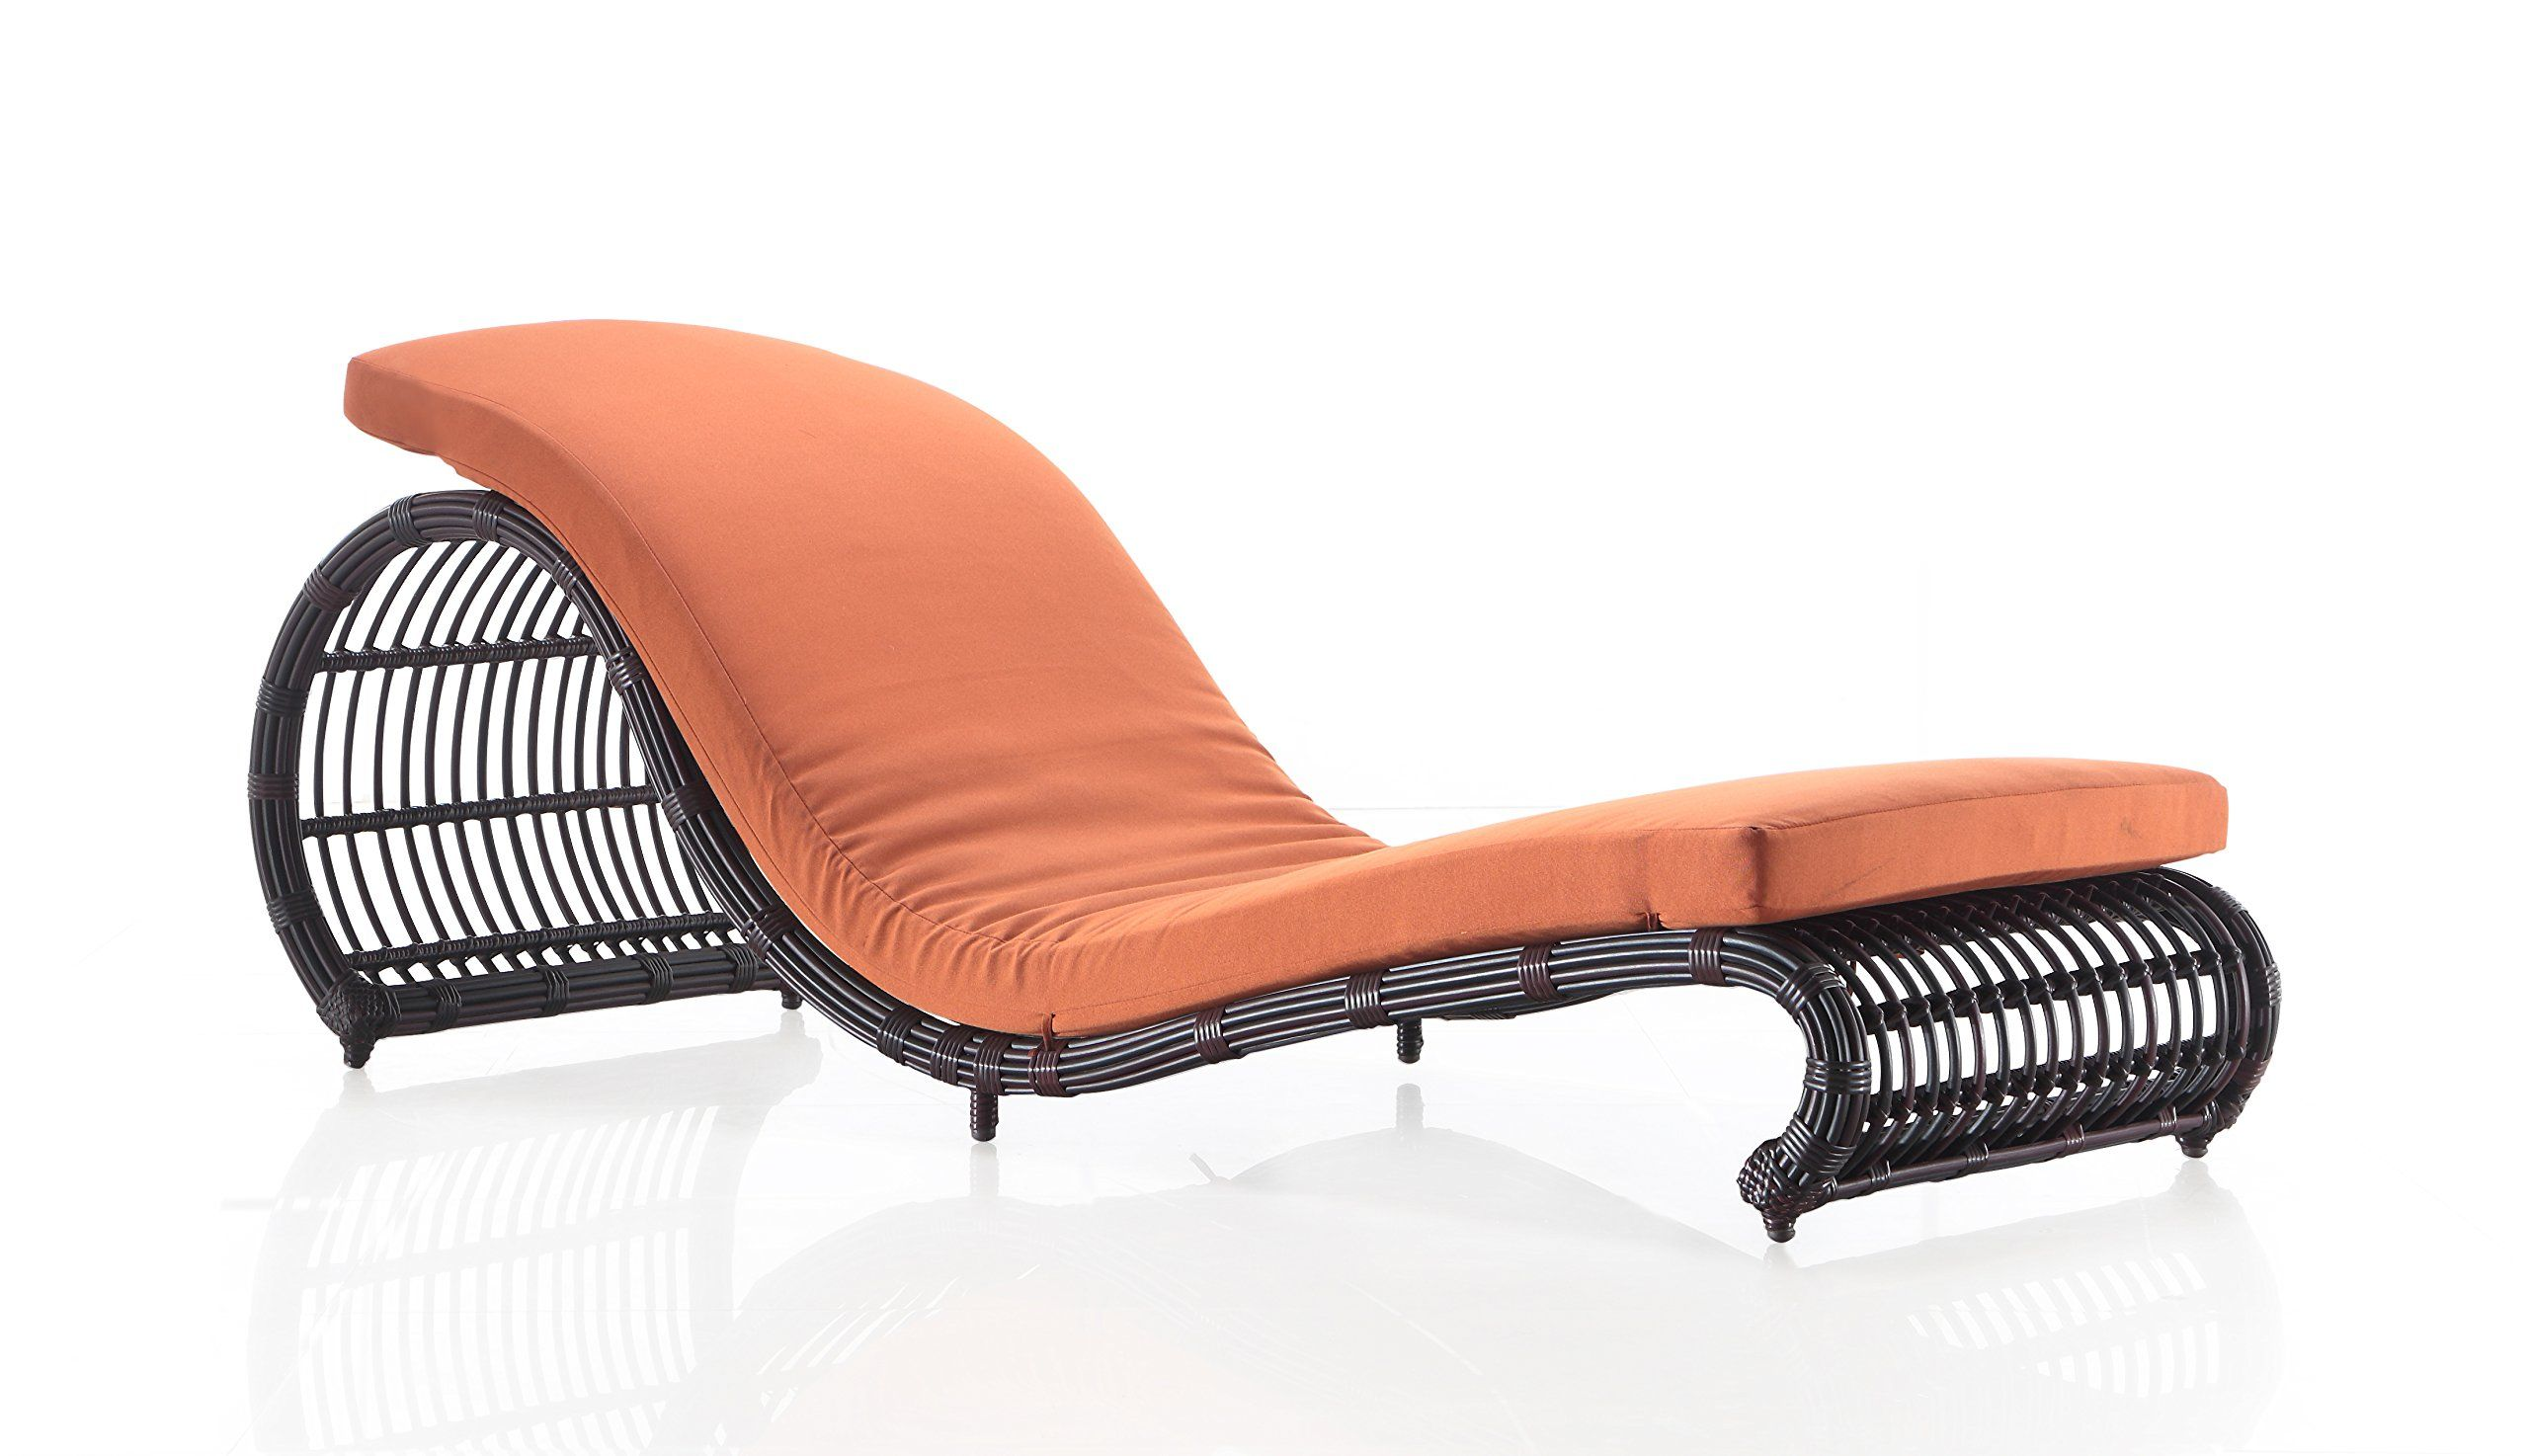 Ceets onda patio lounge chair one piece lounge chair all weather